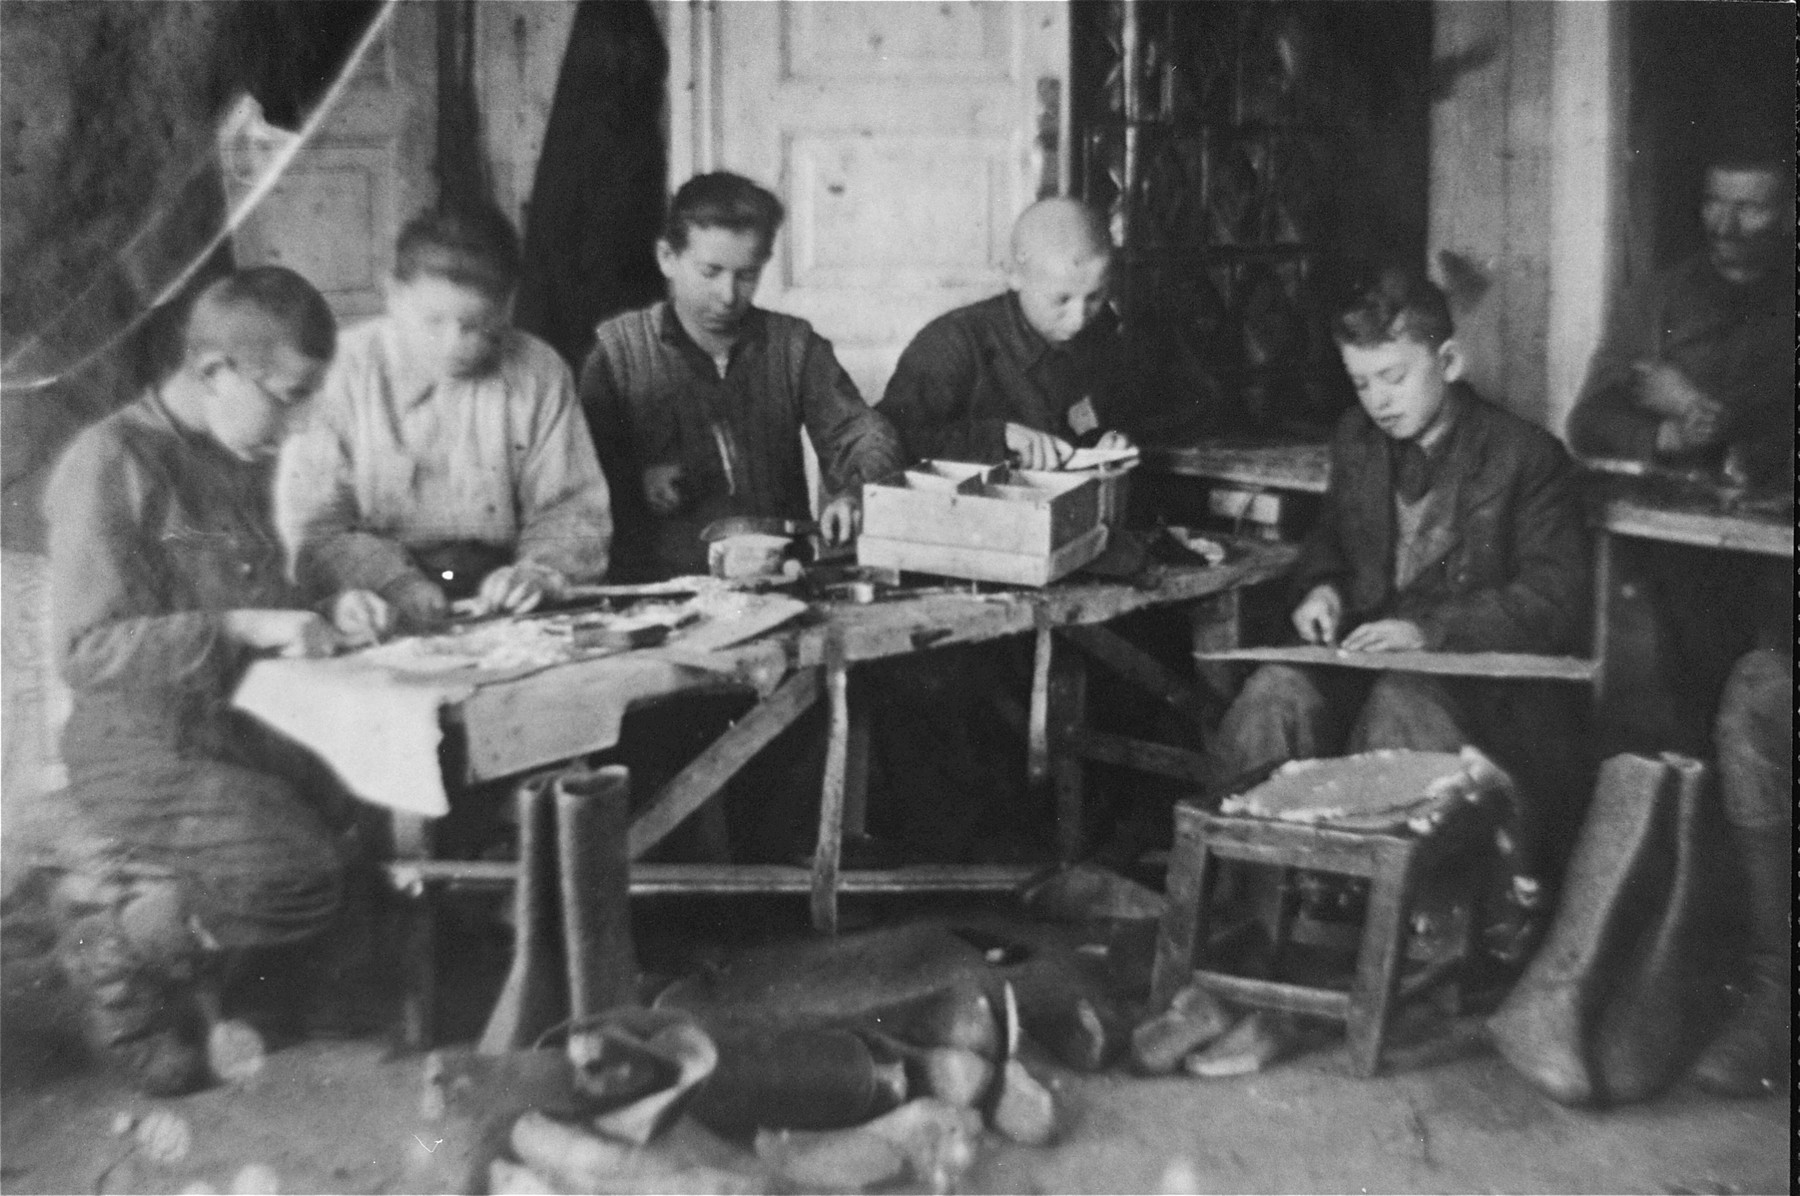 Jewish youth at work in a shoemaking workshop in the Glubokoye ghetto.